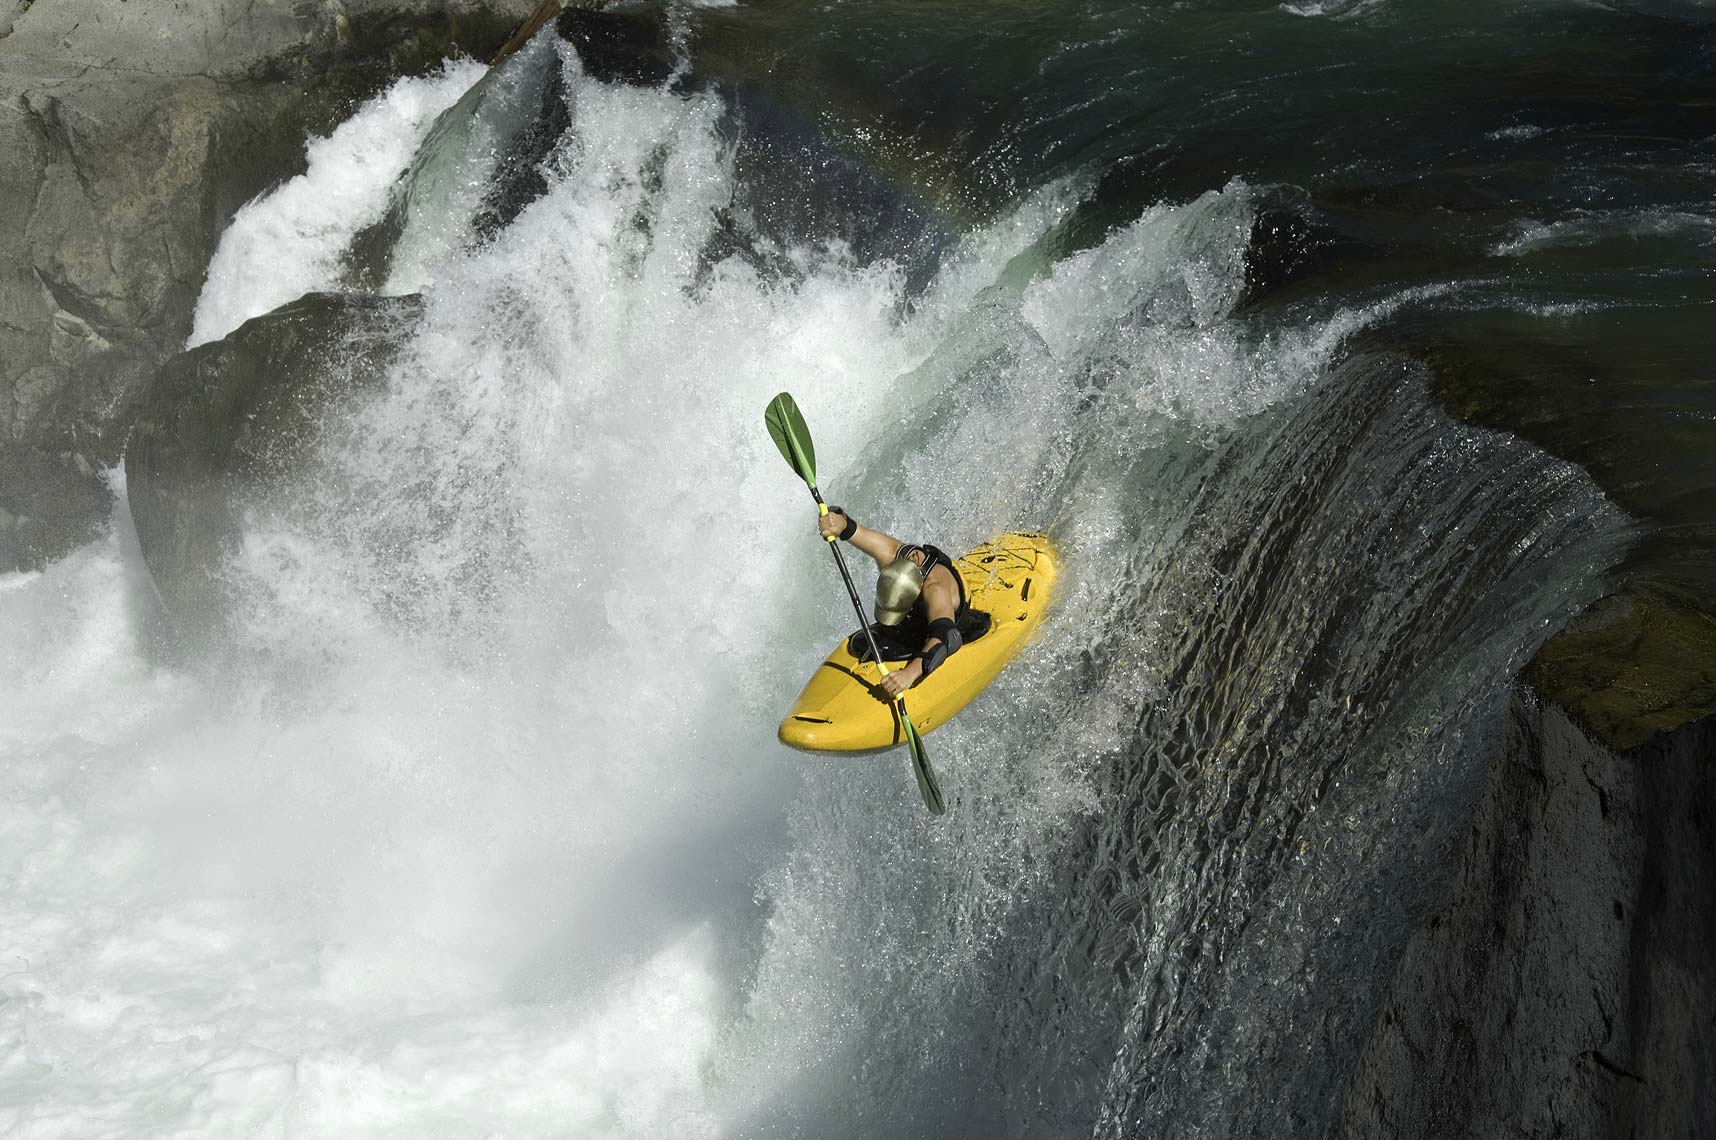 Whistler kayaker jumping waterfalls